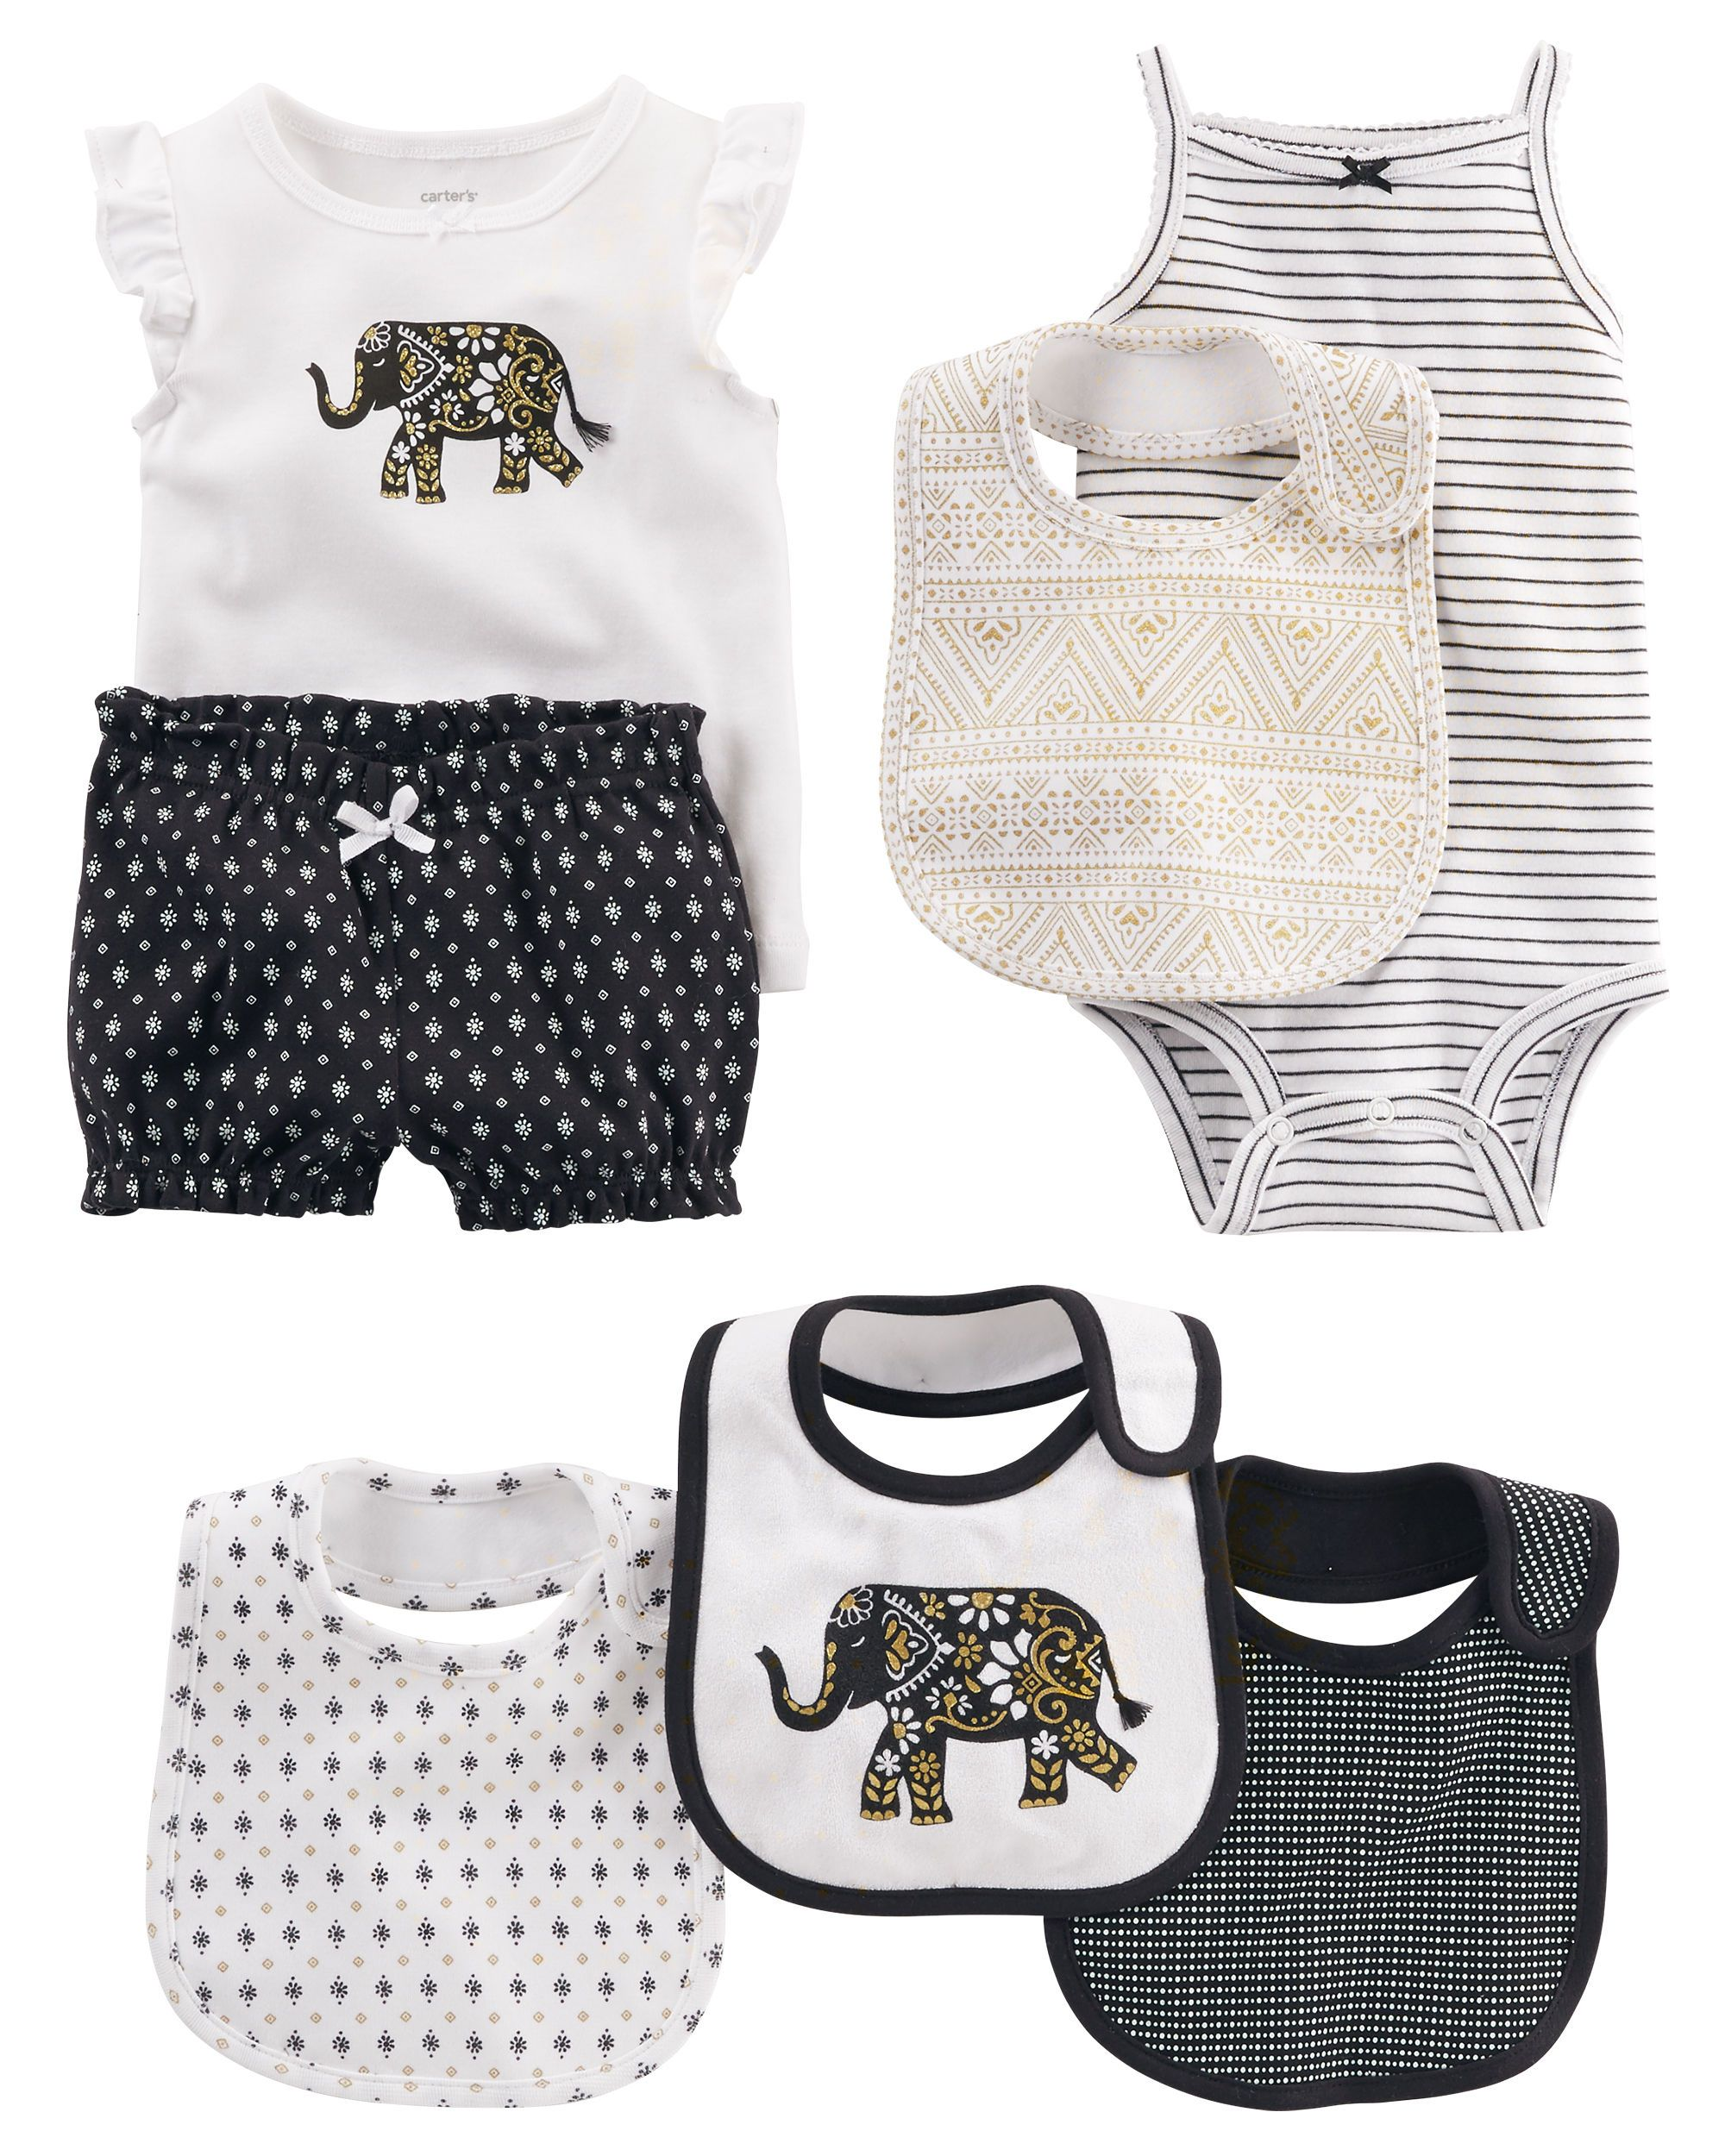 9b3637395 CARFEB2S17 from Carters.com. Shop clothing & accessories from a trusted  name in kids, toddlers, and baby clothes.